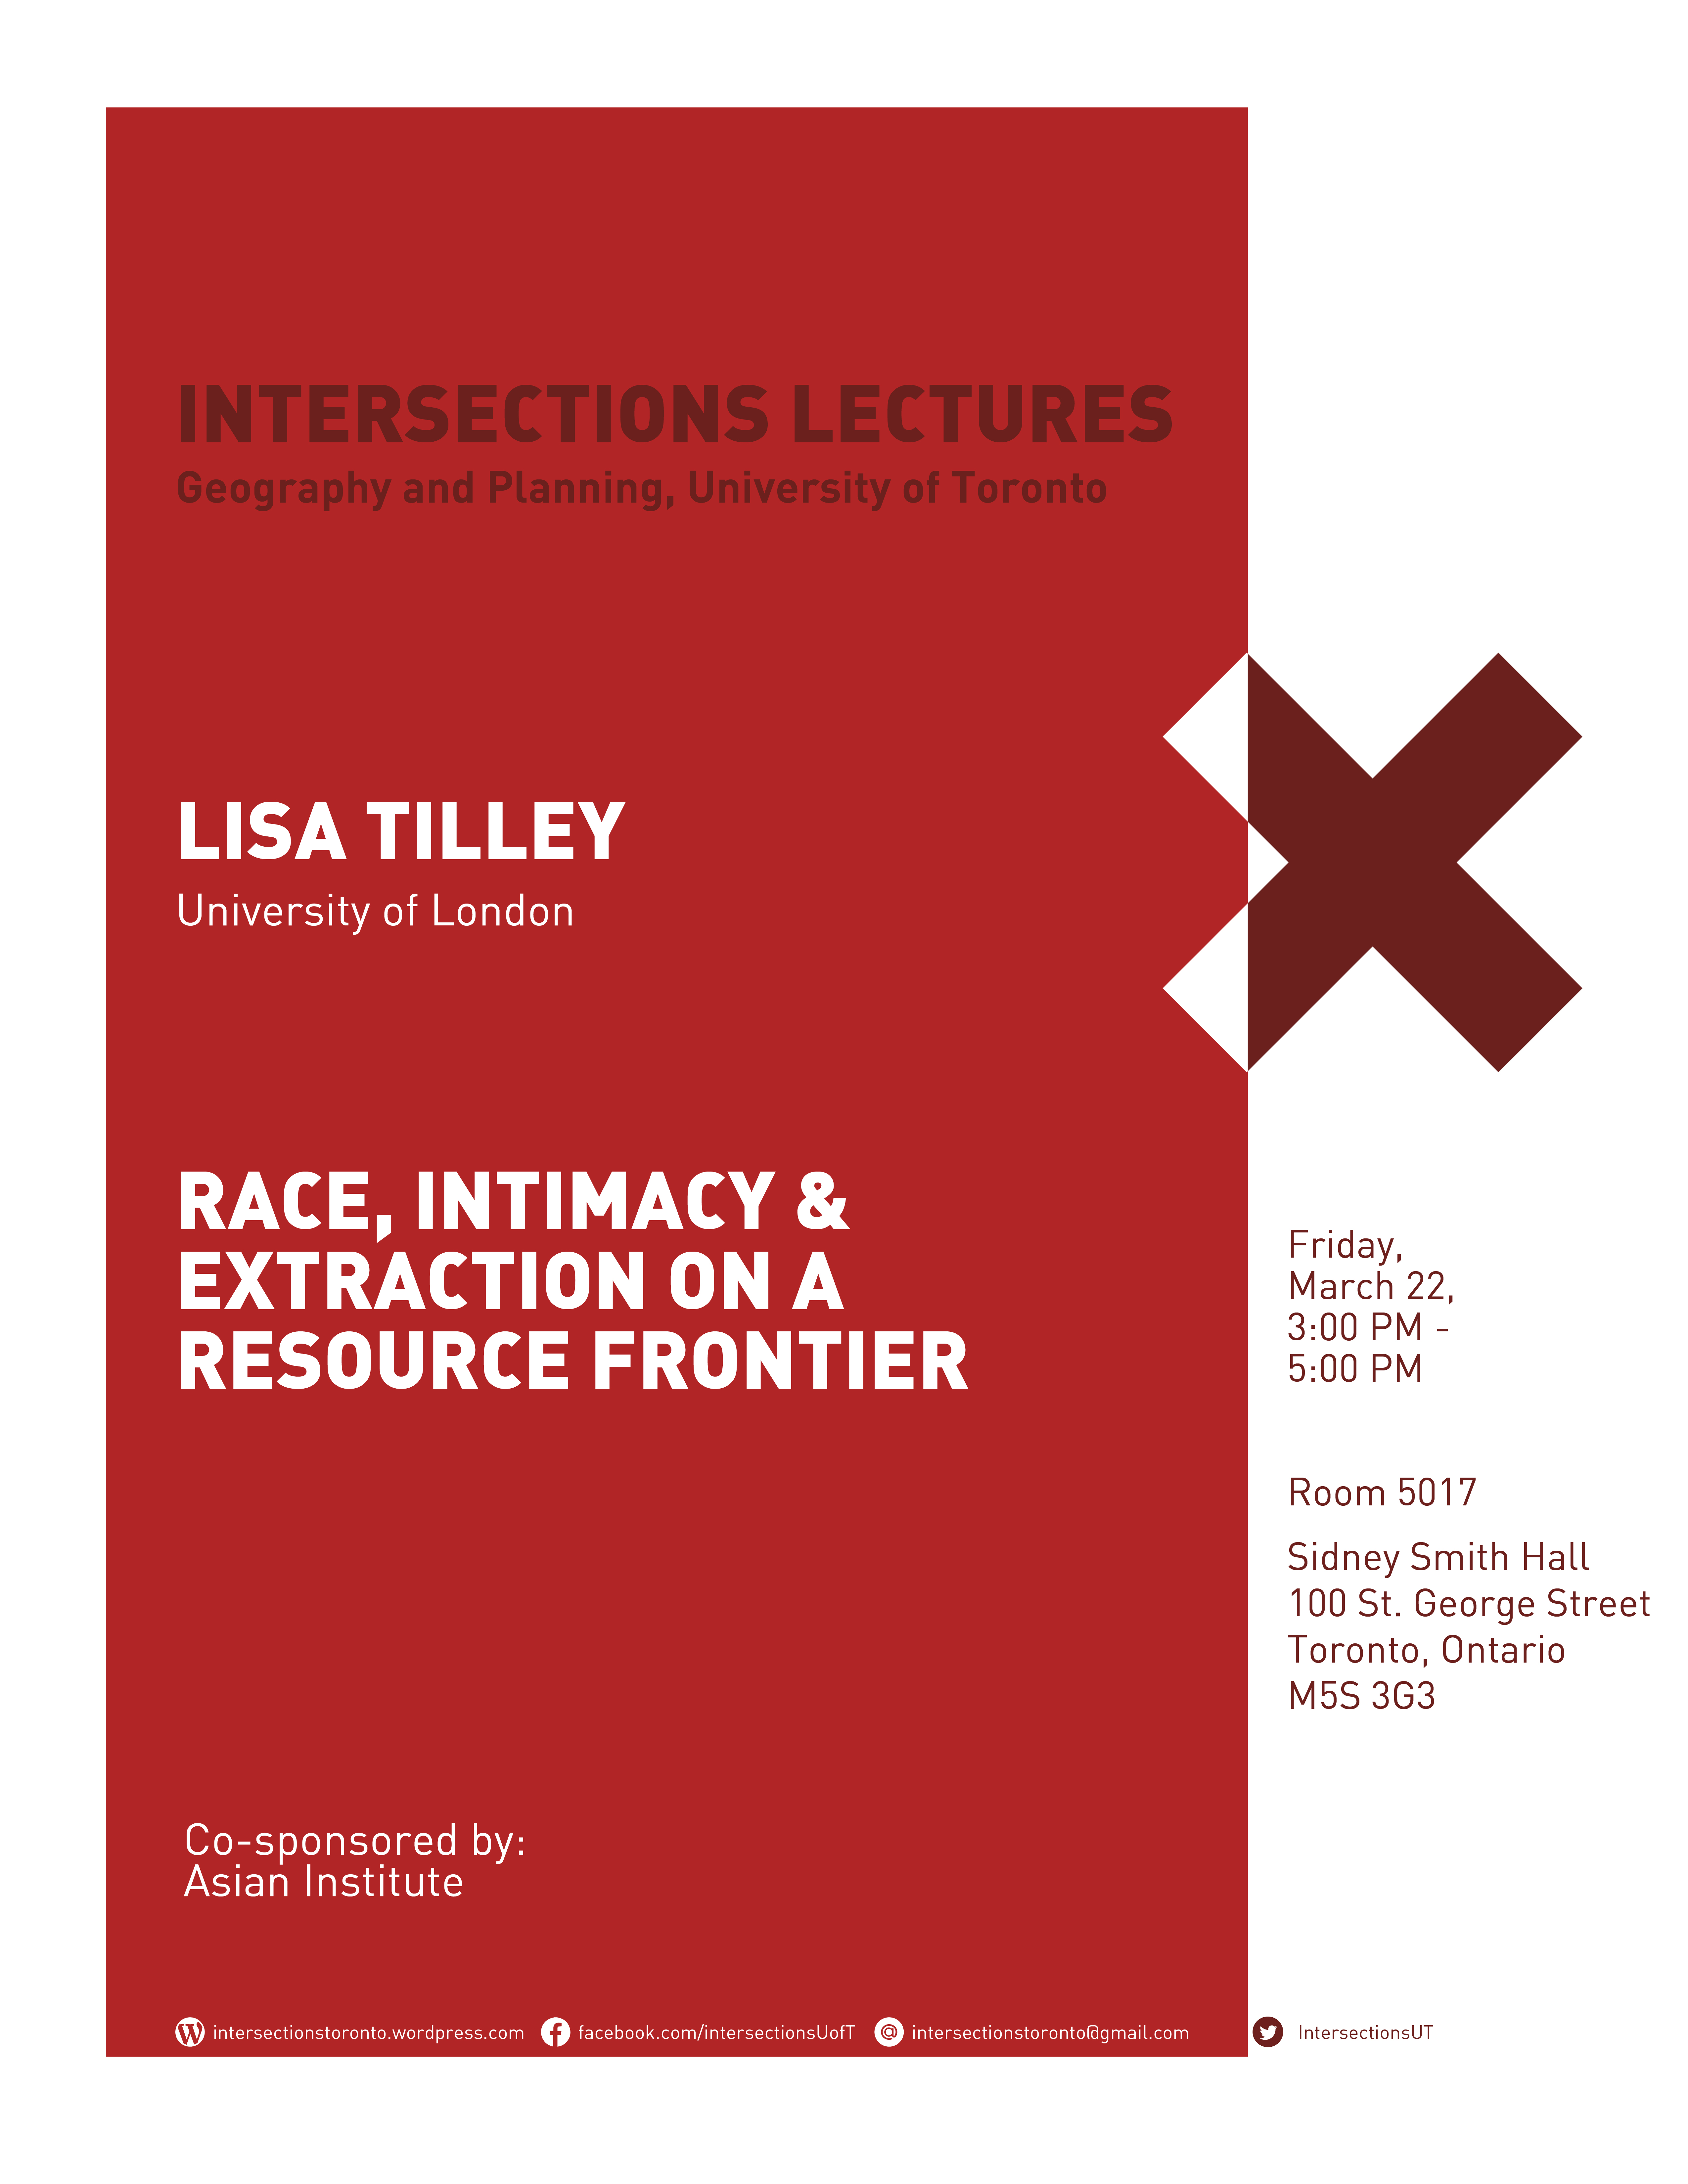 Intersections 2018-19 Posters_Lisa Tilley